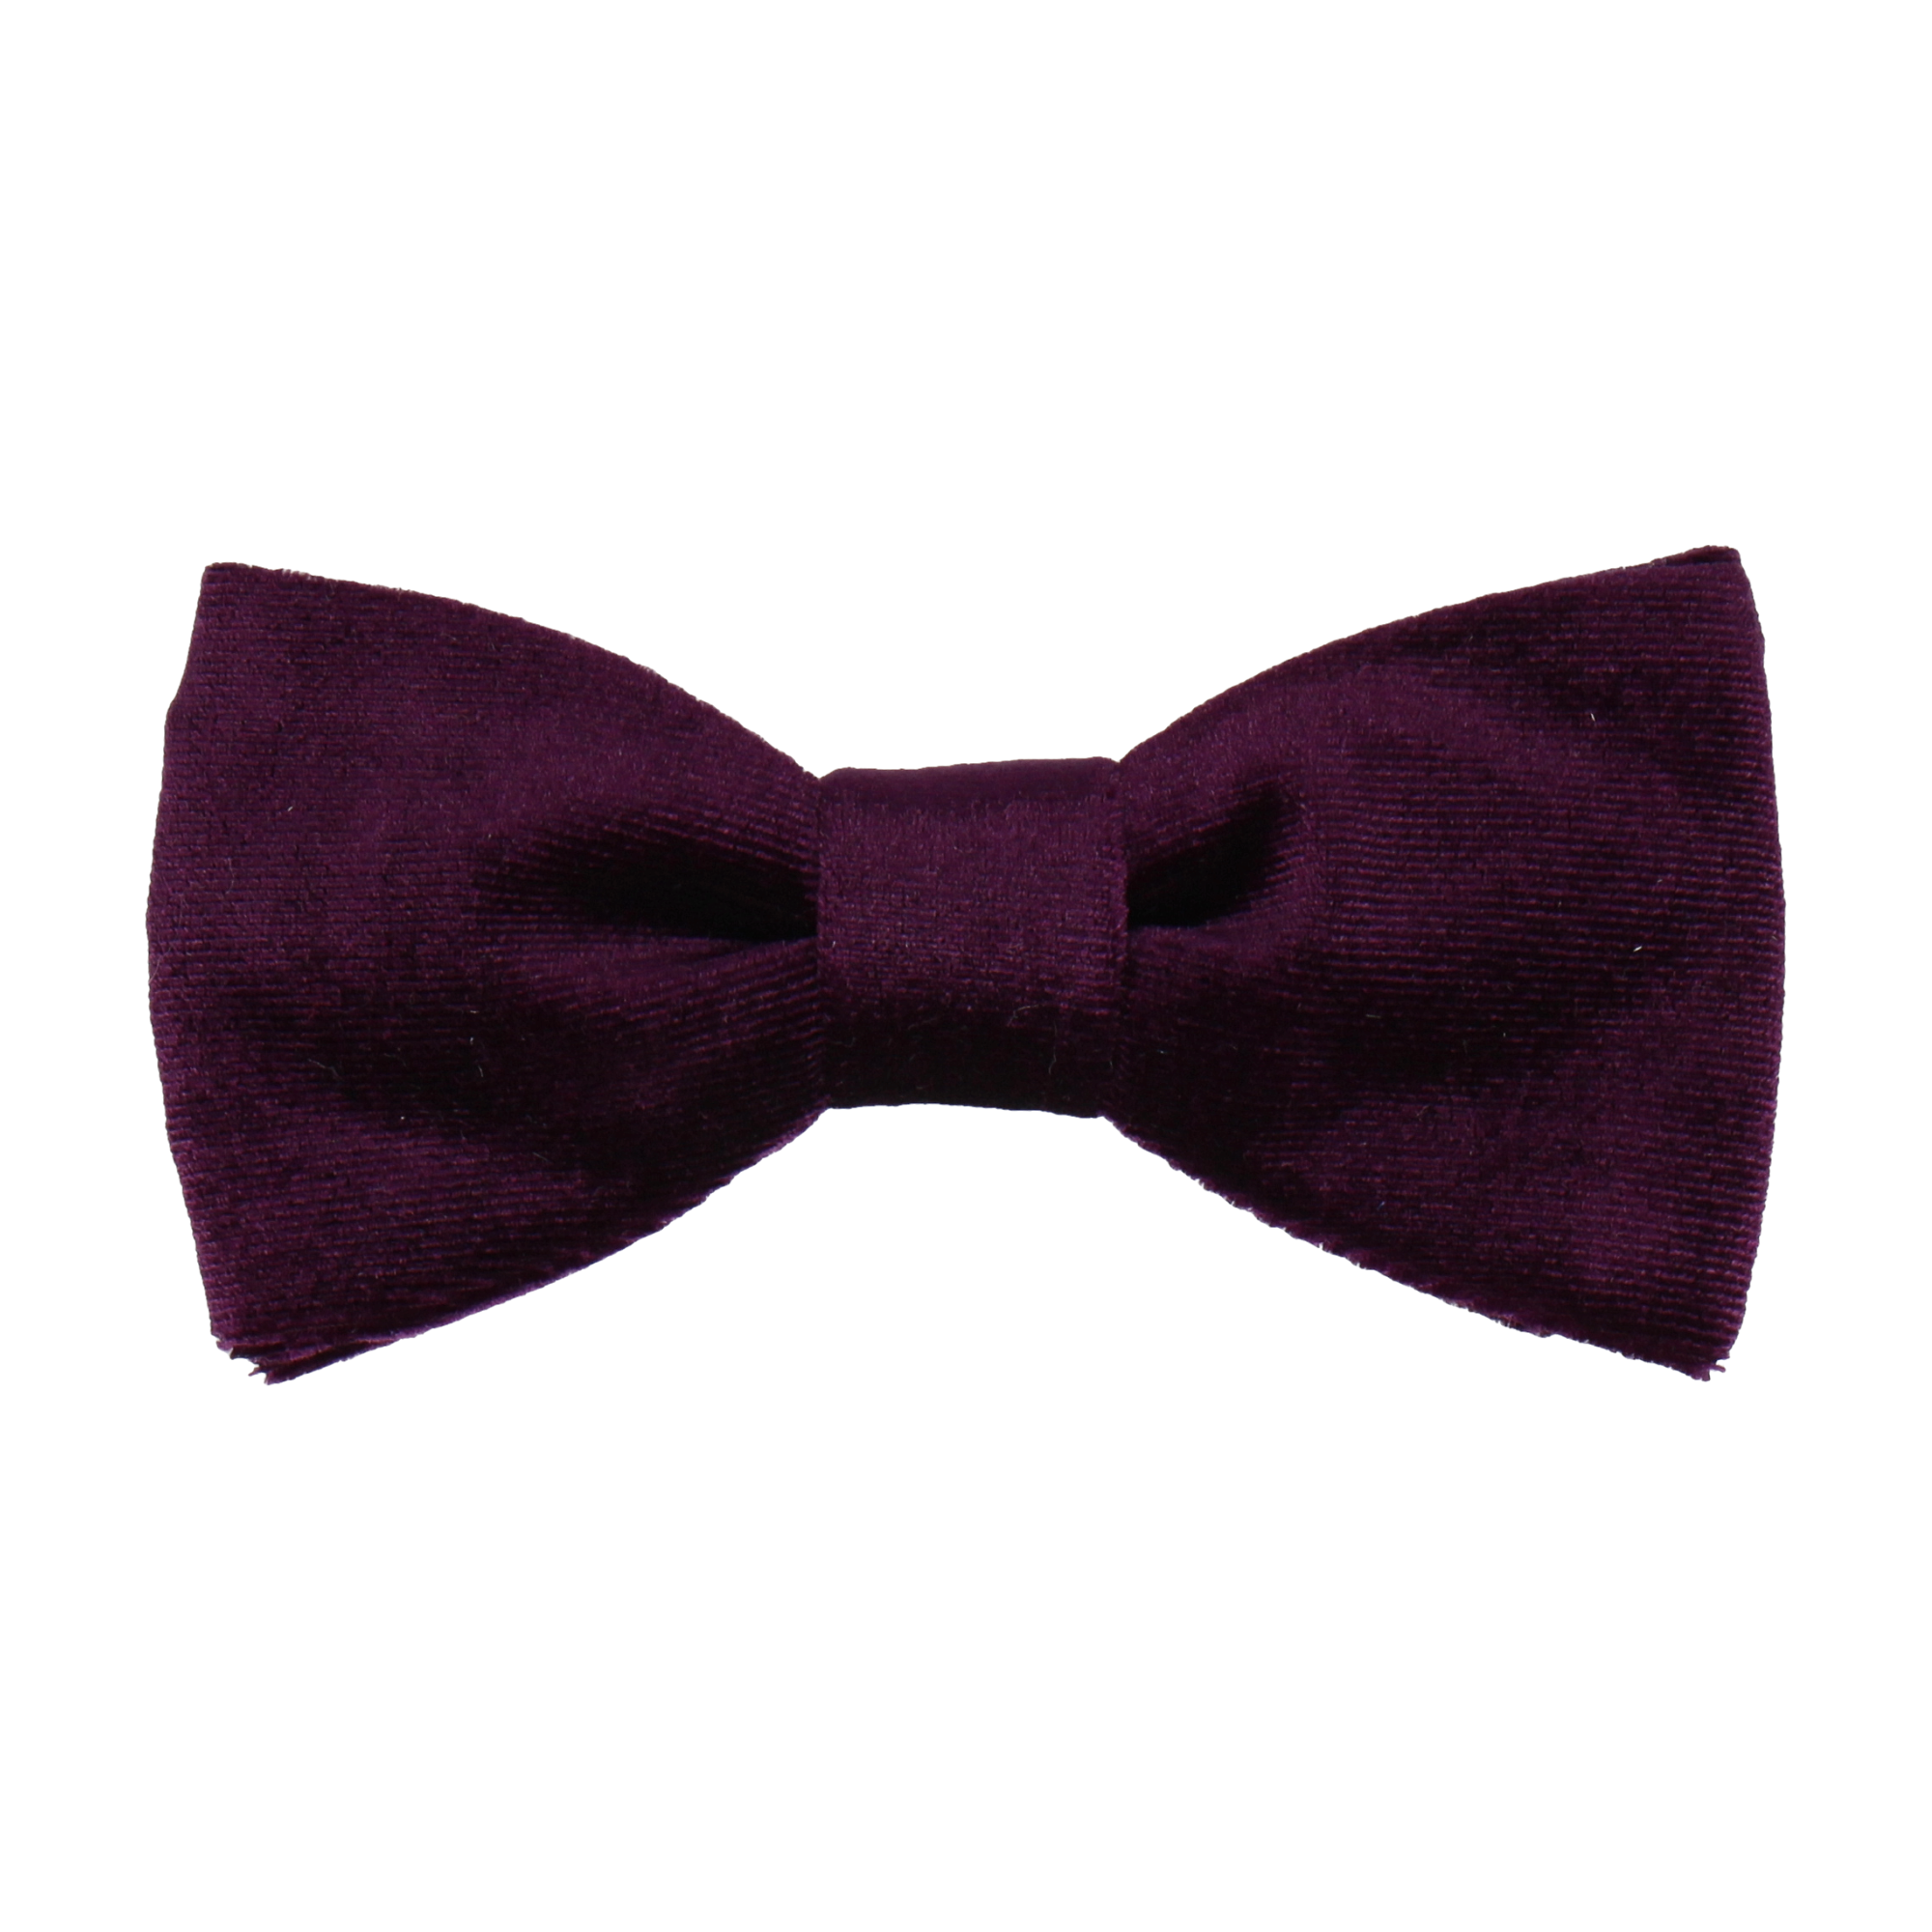 Velvet in Royal Purple Bow Tie